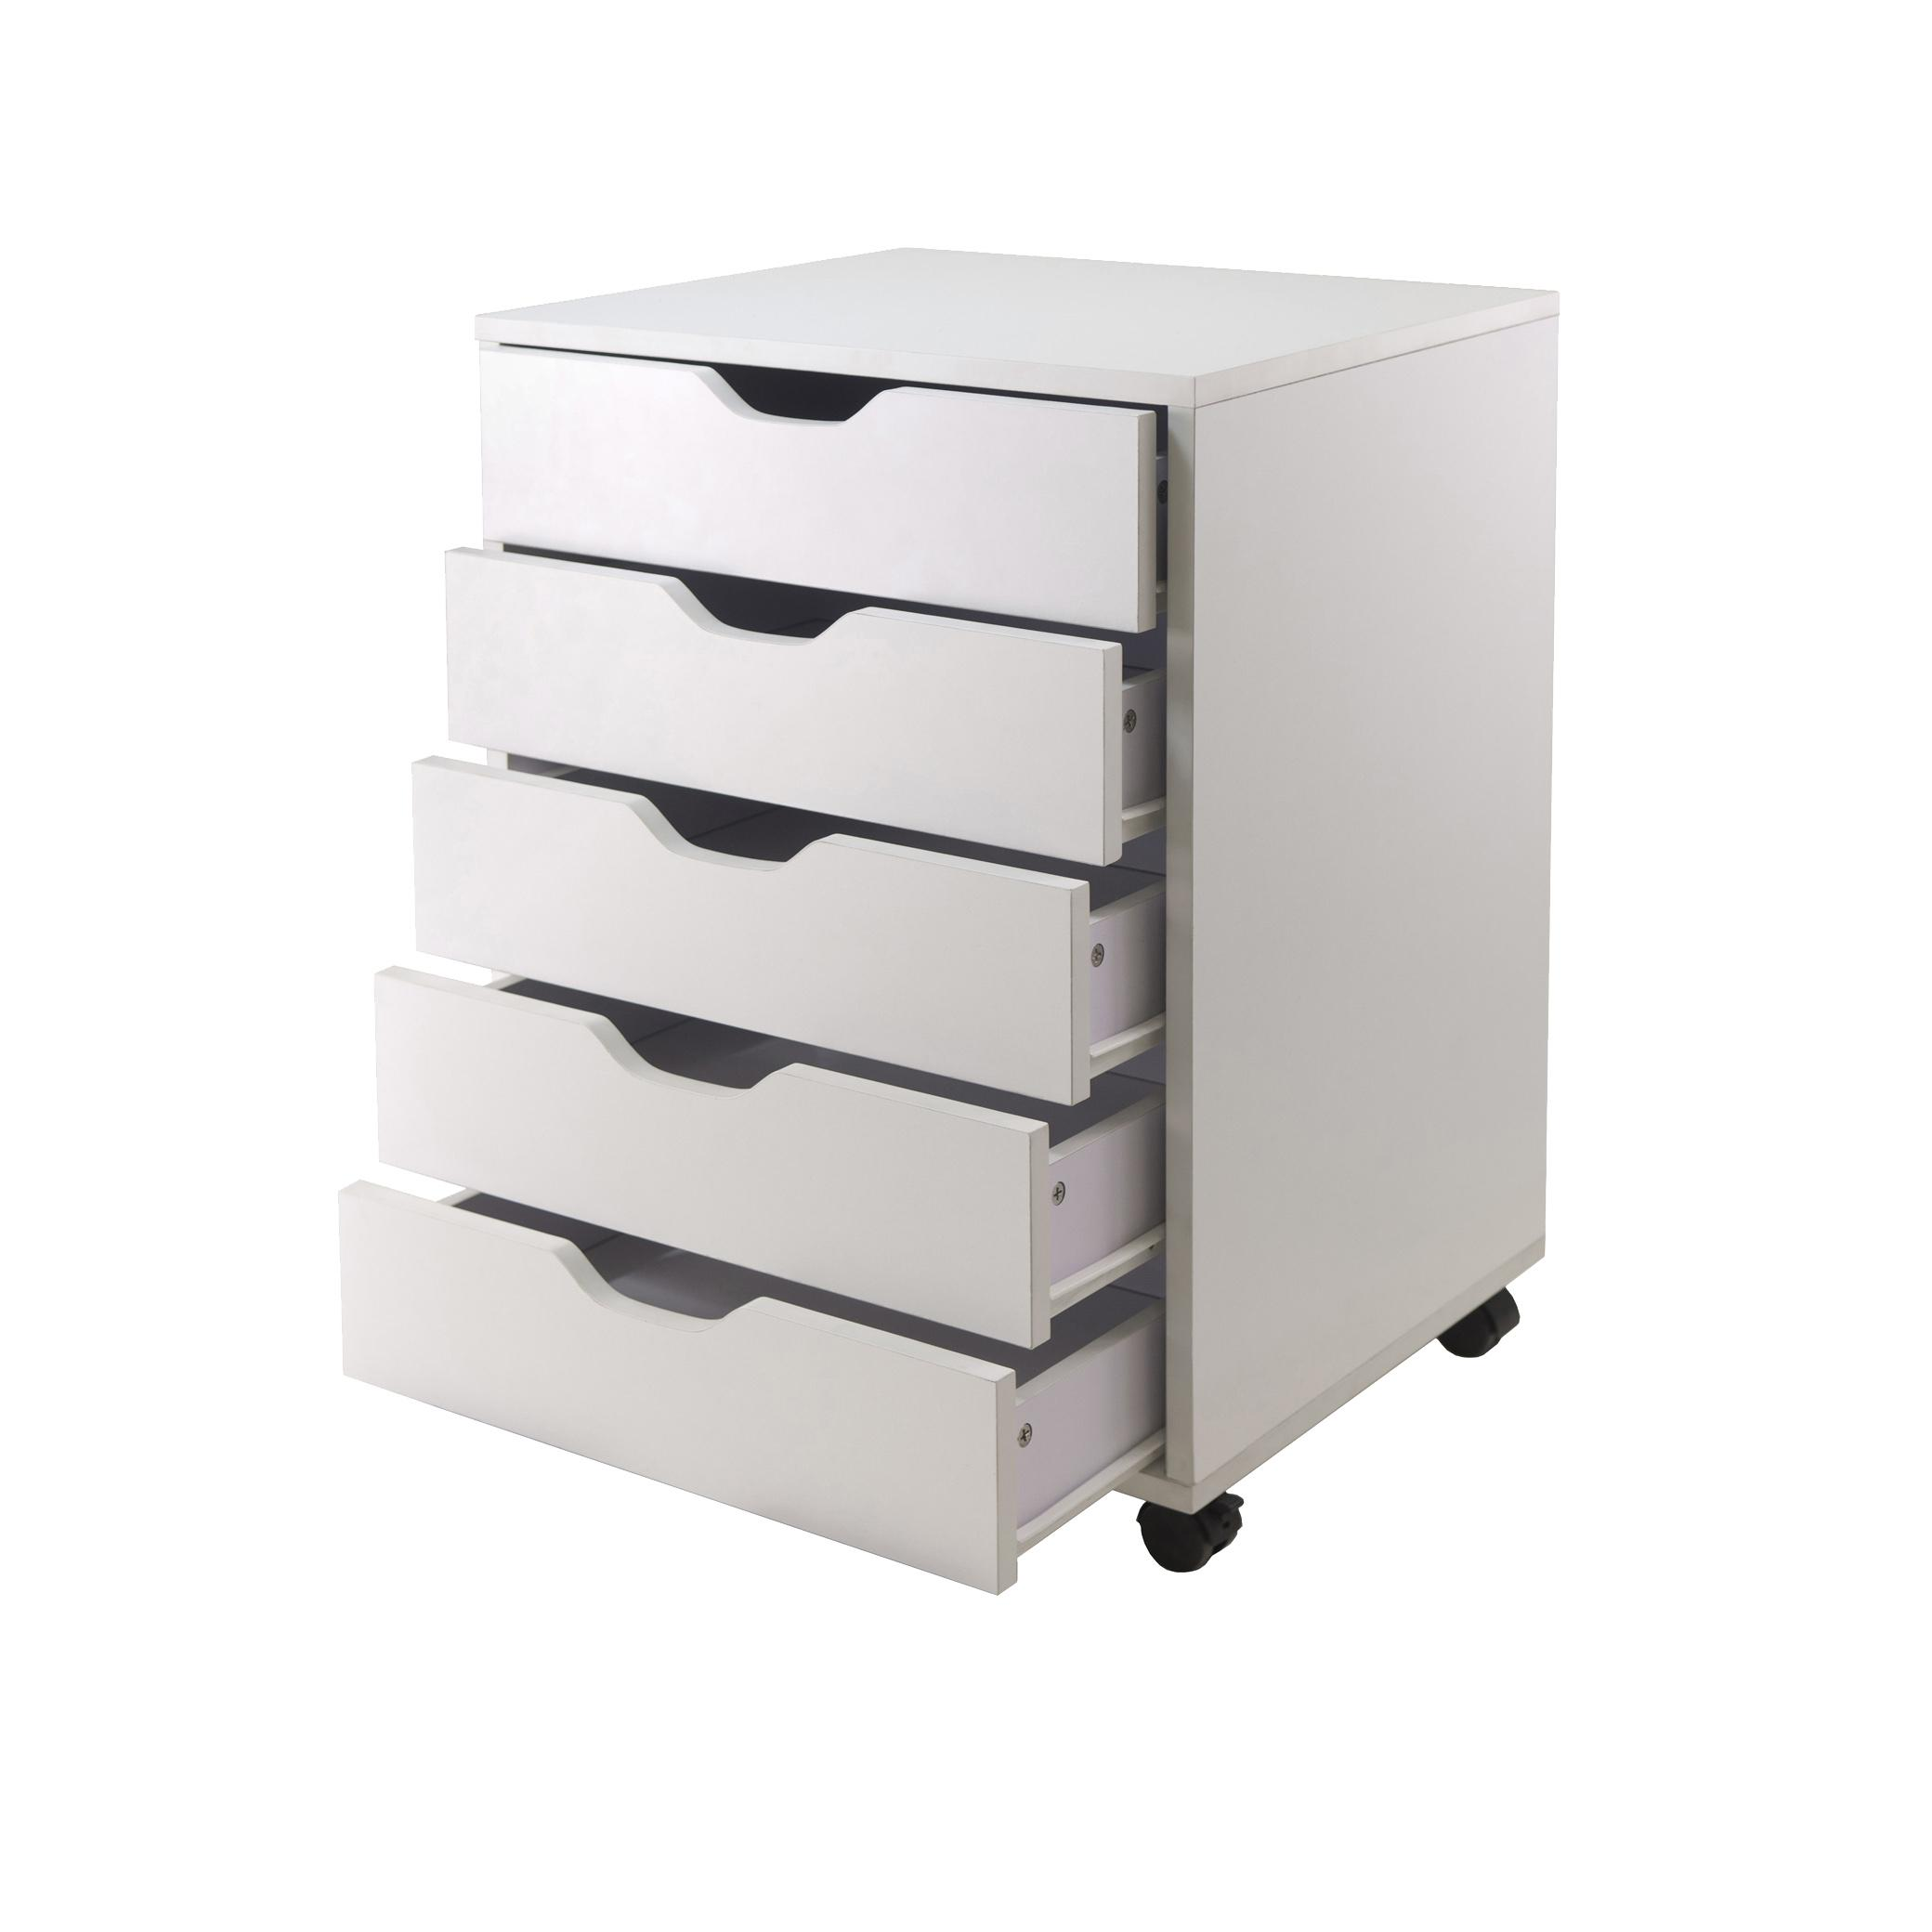 drawers cabinets waterproof humble tips in our cabinet filing file much lateral believed documents office pin very com attracts hardly workplace fireproof the advice drawer